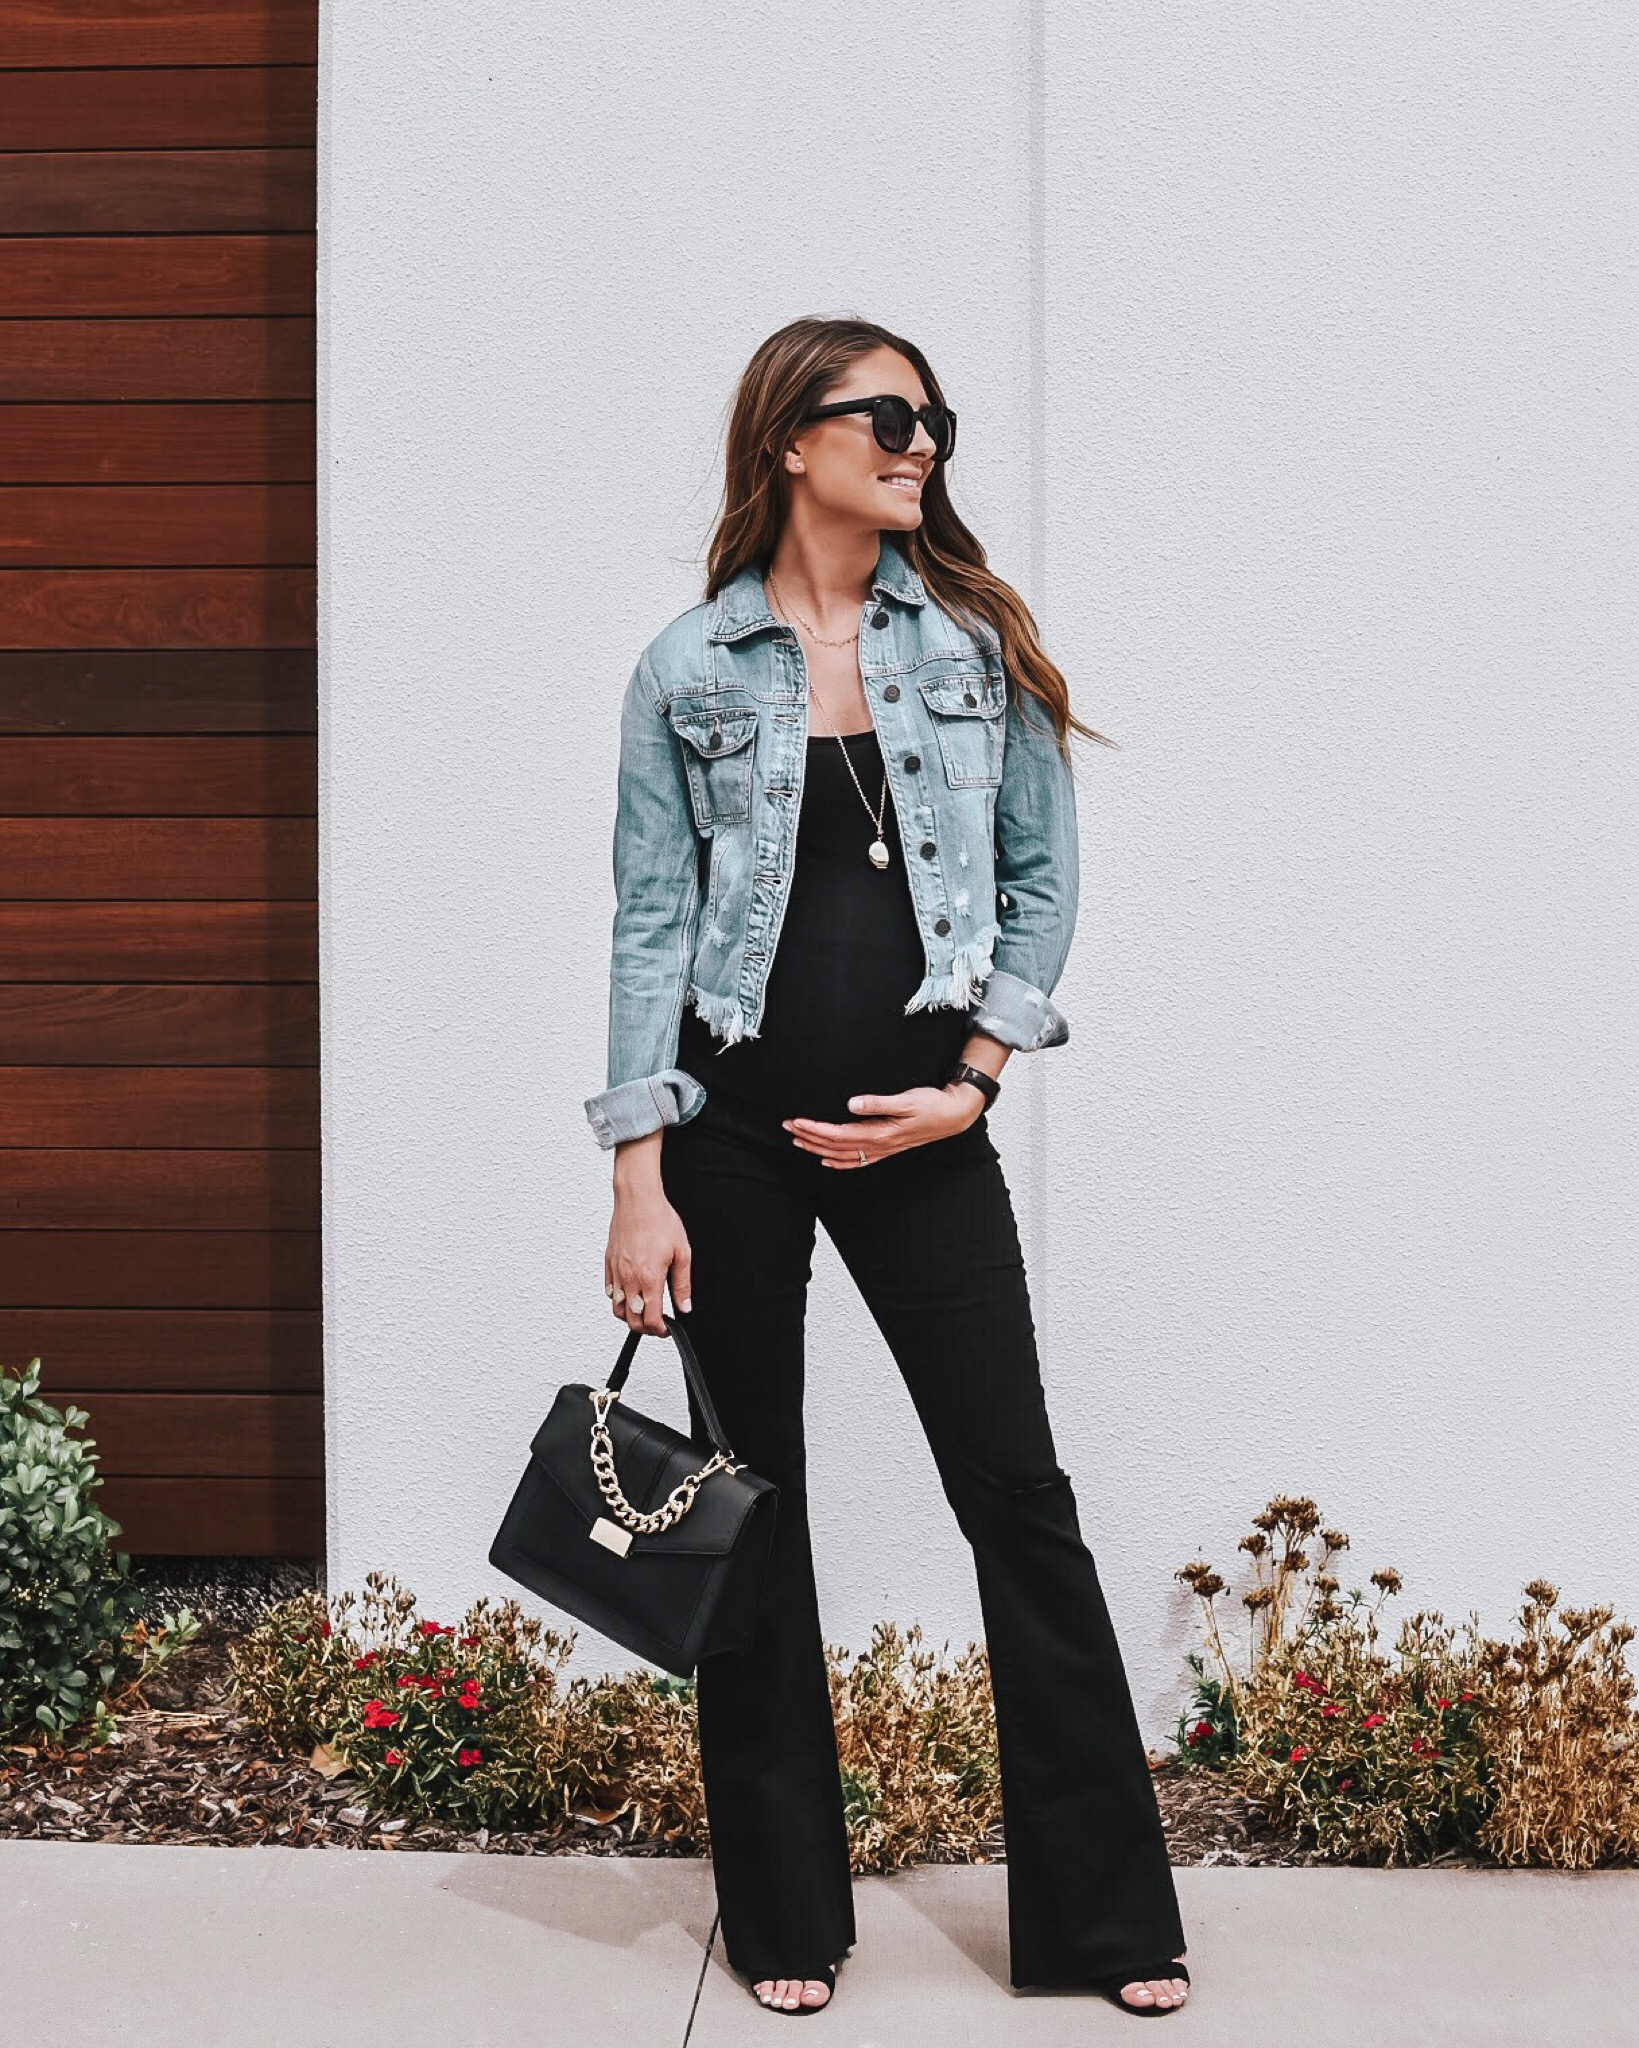 Flared Maternity Jeans - The maternity jeans of my dreams! How fun is that flare?! Run tts - they have a raw hem, so I just cut them to adjust the length.